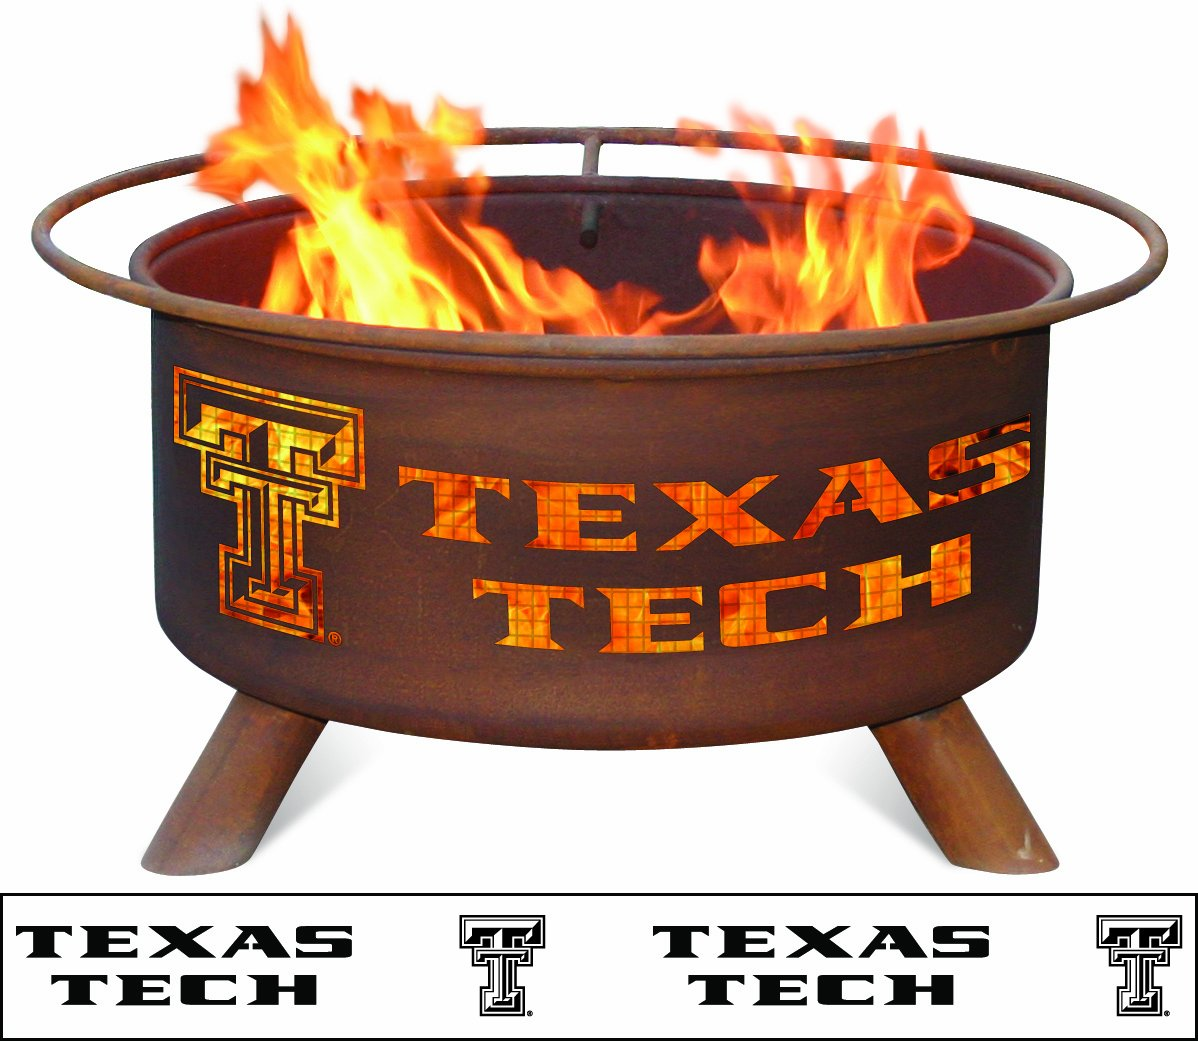 Patina Products F233, 30 Inch Texas Tech Fire Pit